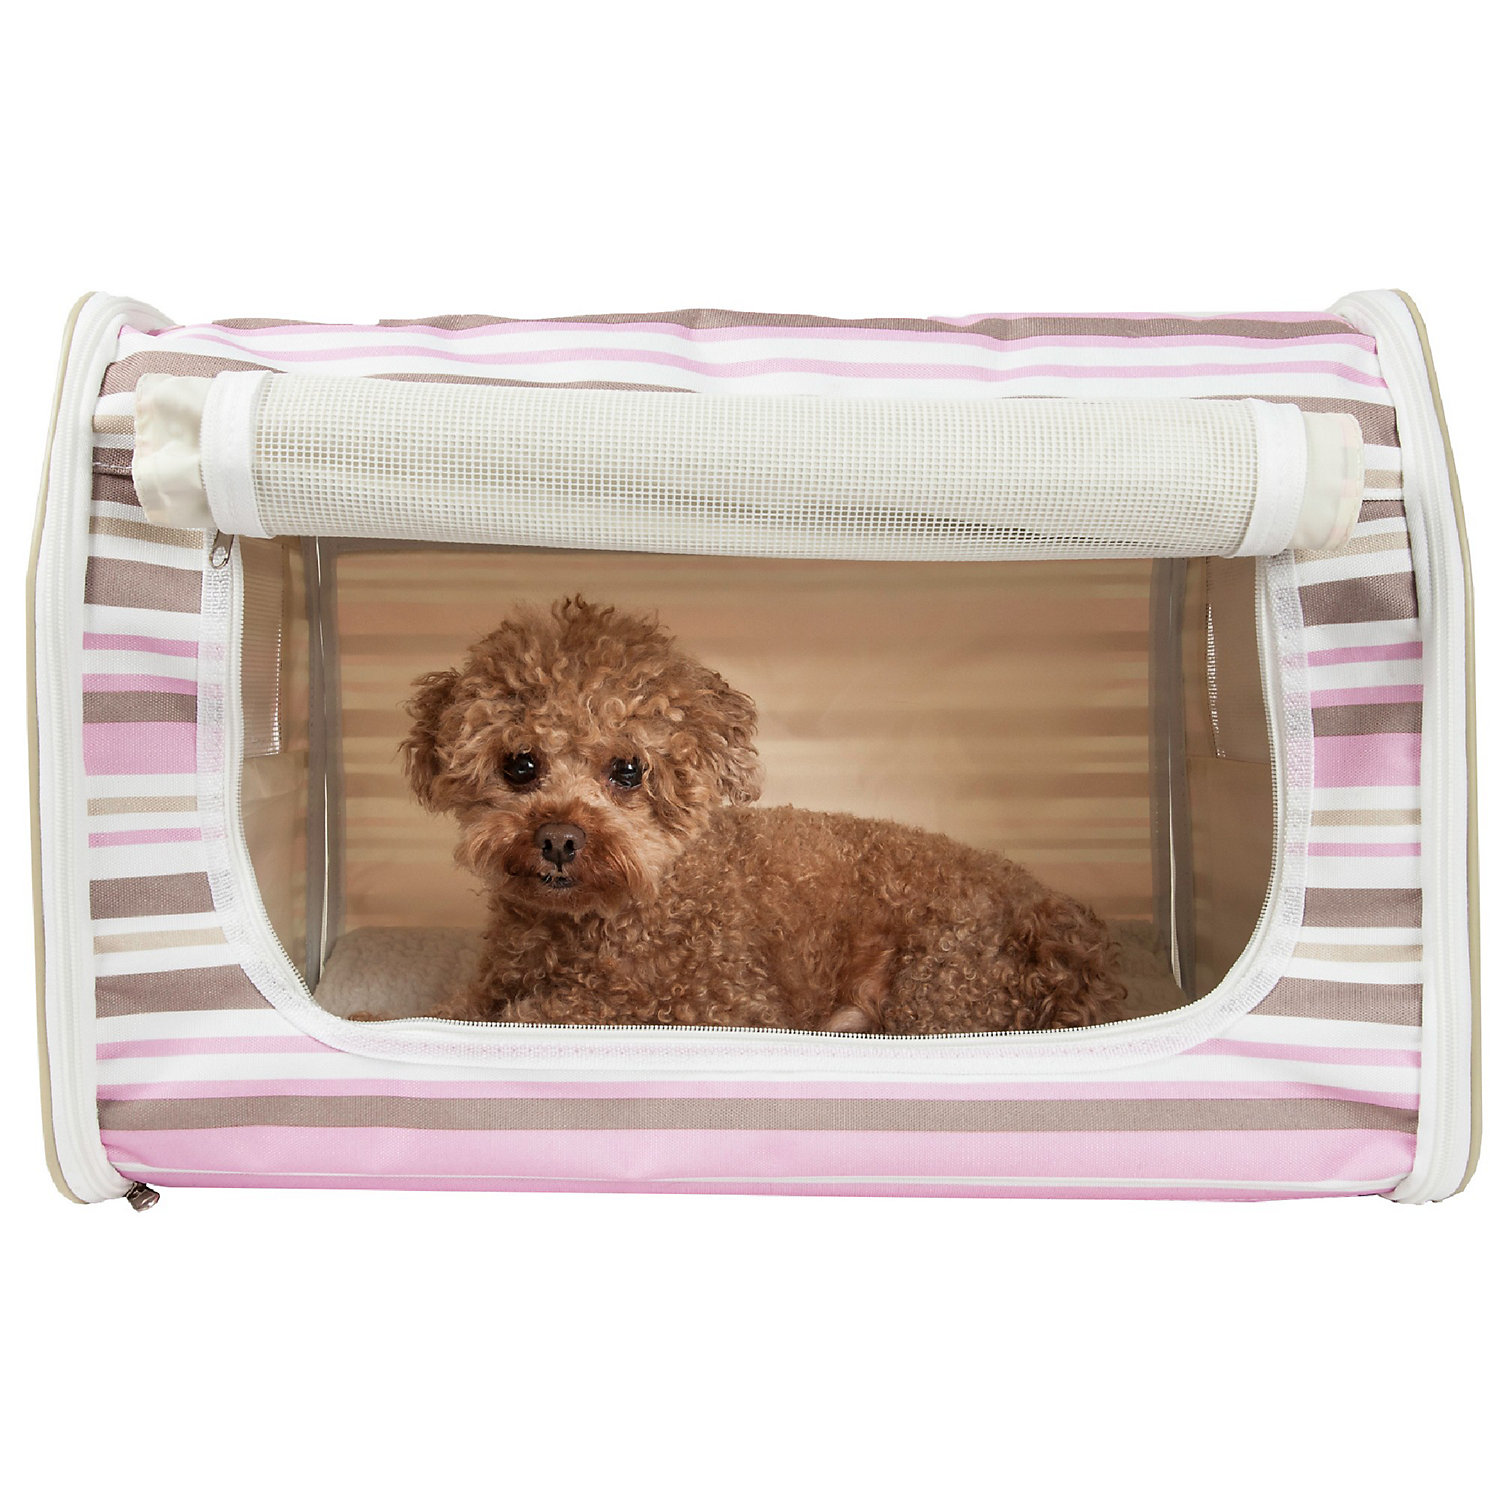 Pet Life Folding Zippered Lightweight WireFramed Easy Folding Pet Crate  XSmall  Stripe Pattern Pink  White